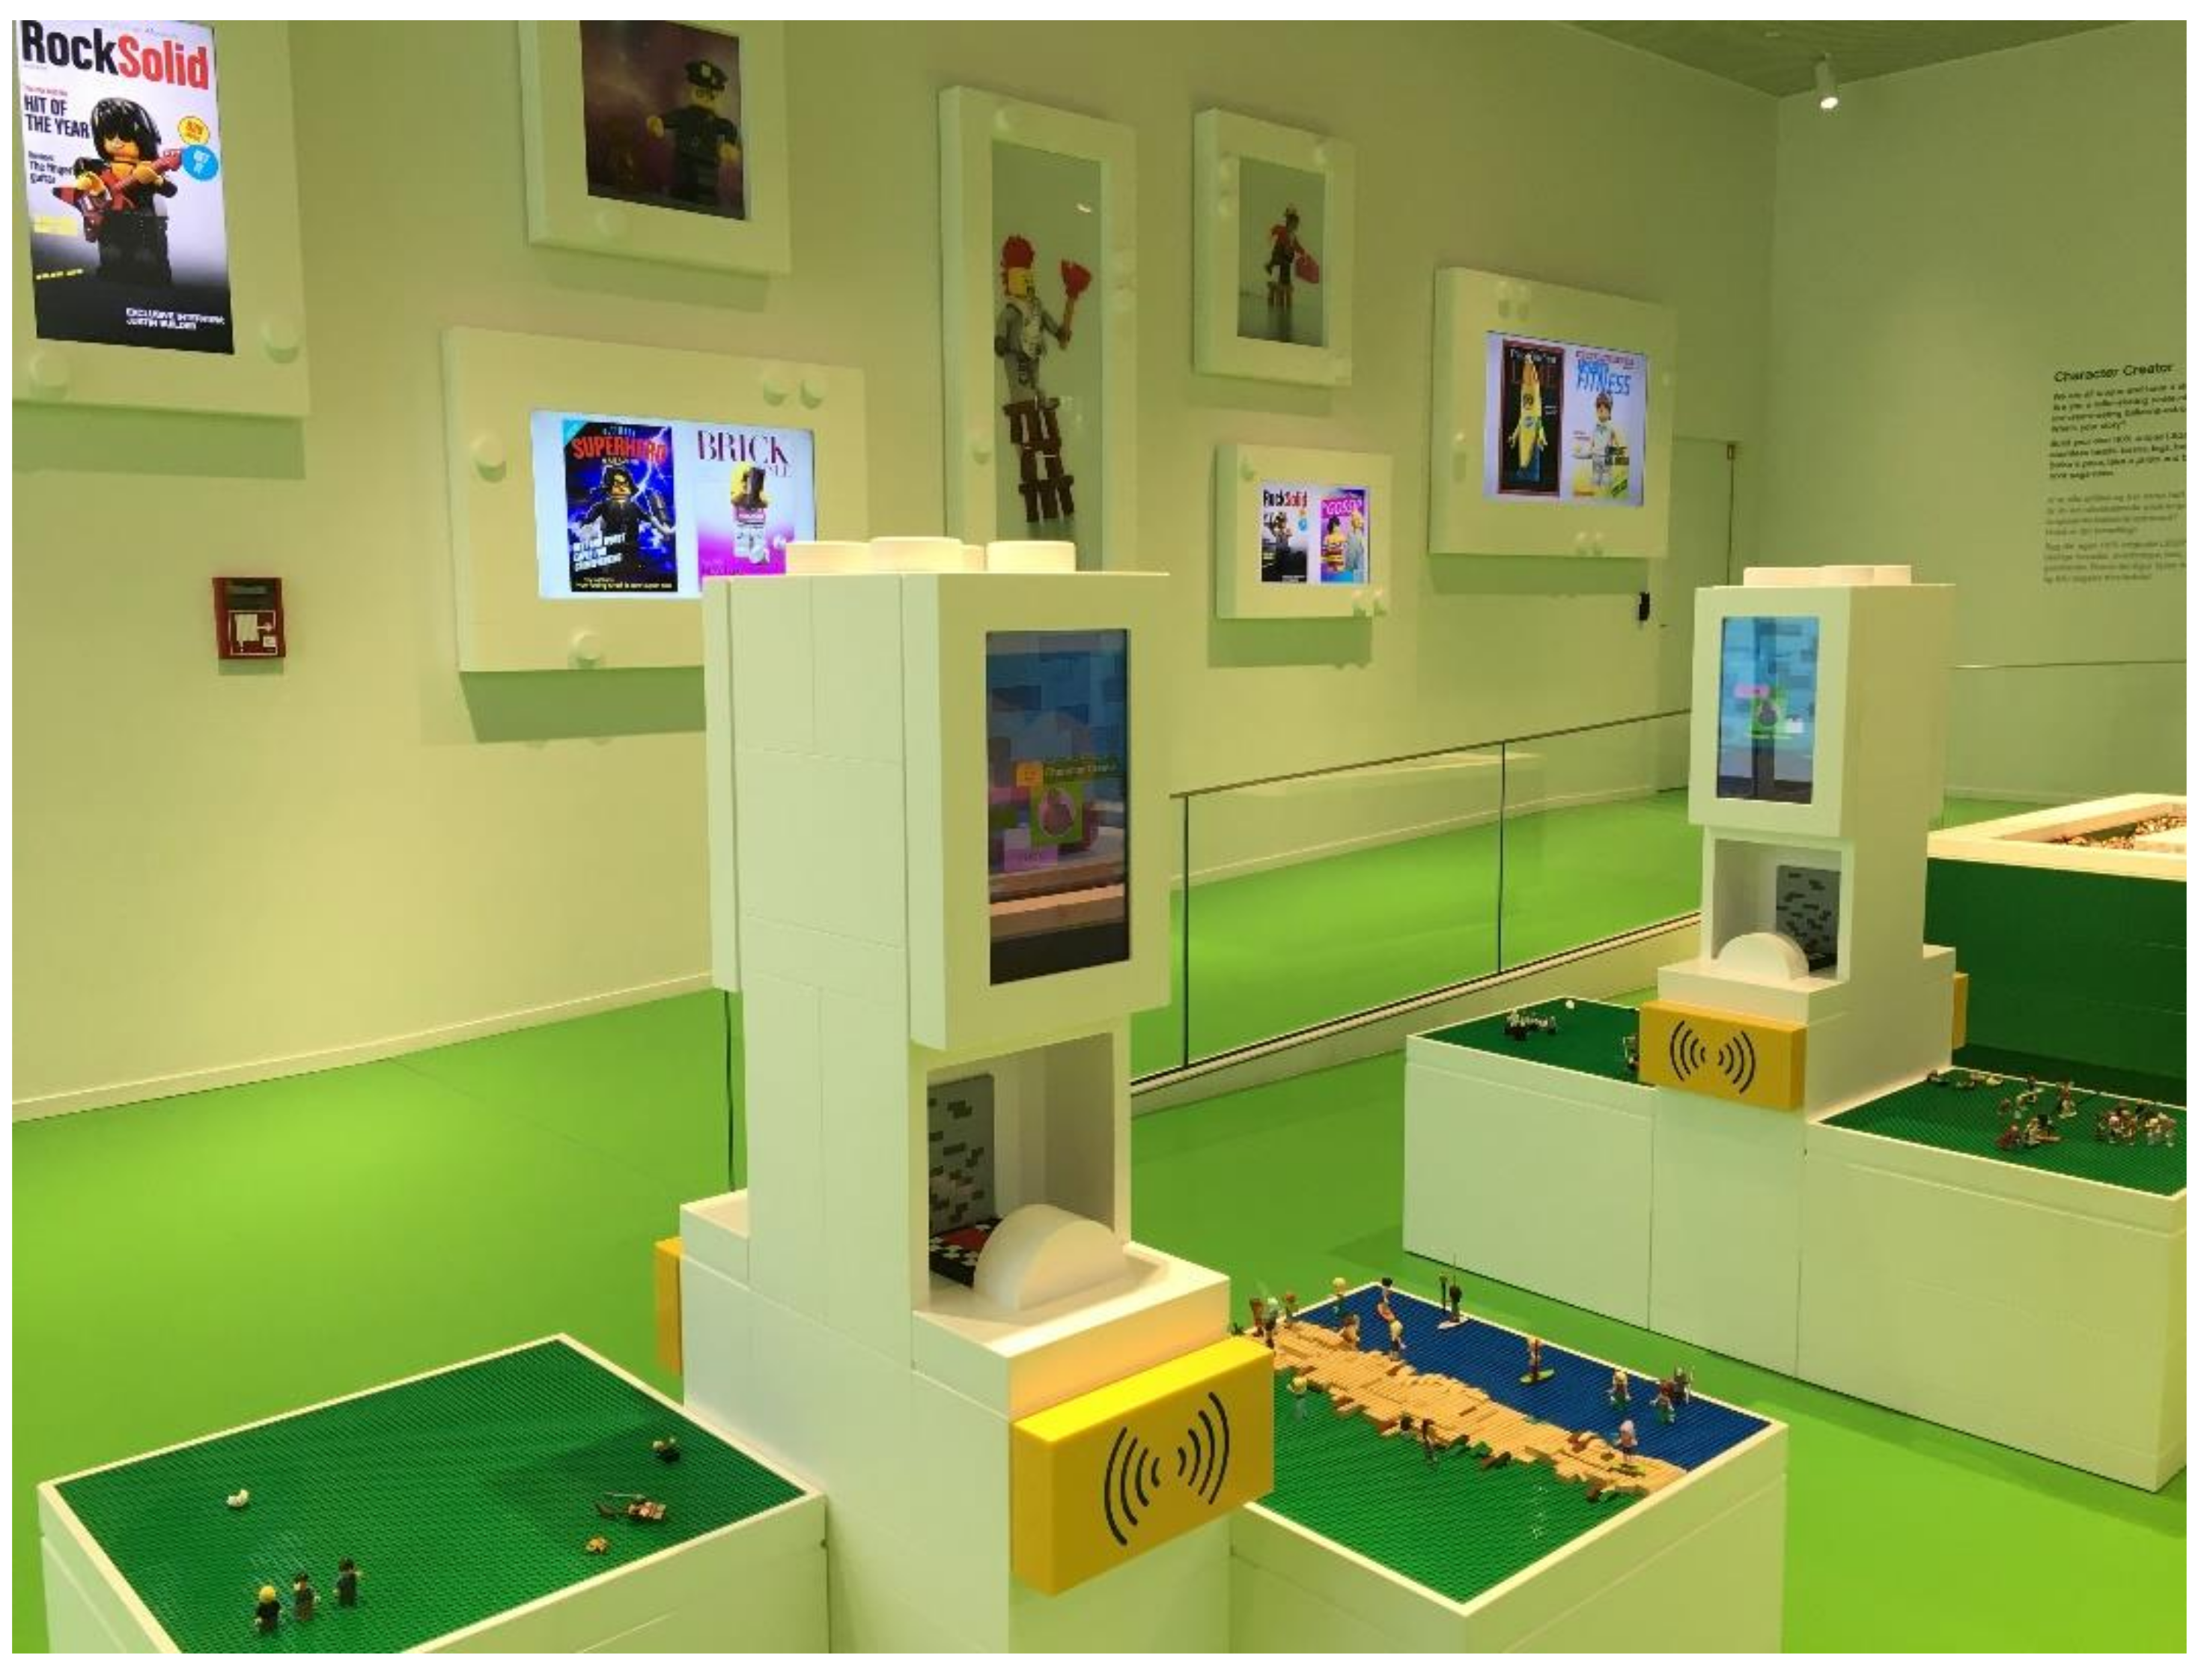 Mti Free Full Text Multimodal Technologies In Lego House A Power Plant Layout Pokemon Yellow 02 00070 G002